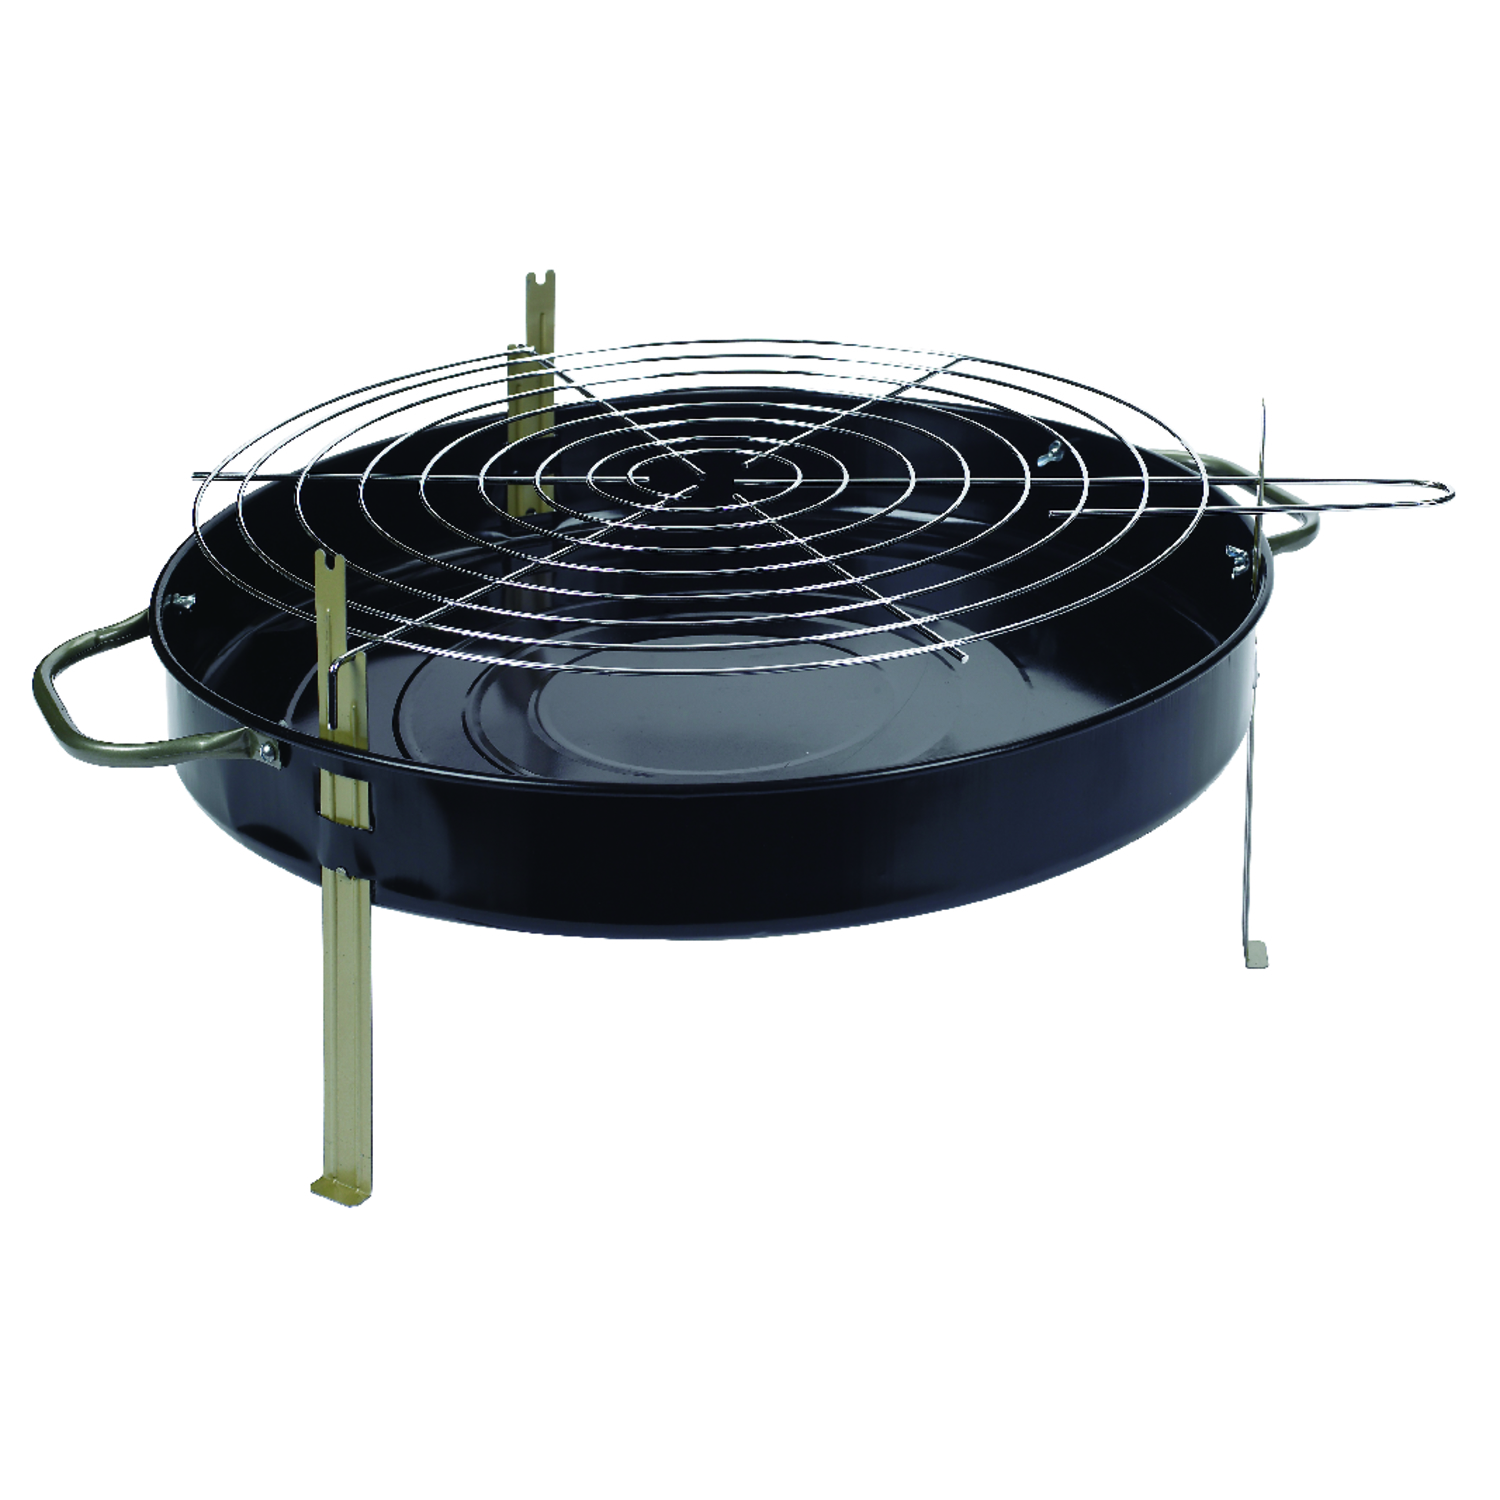 Marsh Allen Table Top 18 Inch Charcoal 22 In. W Table Top Grill Black